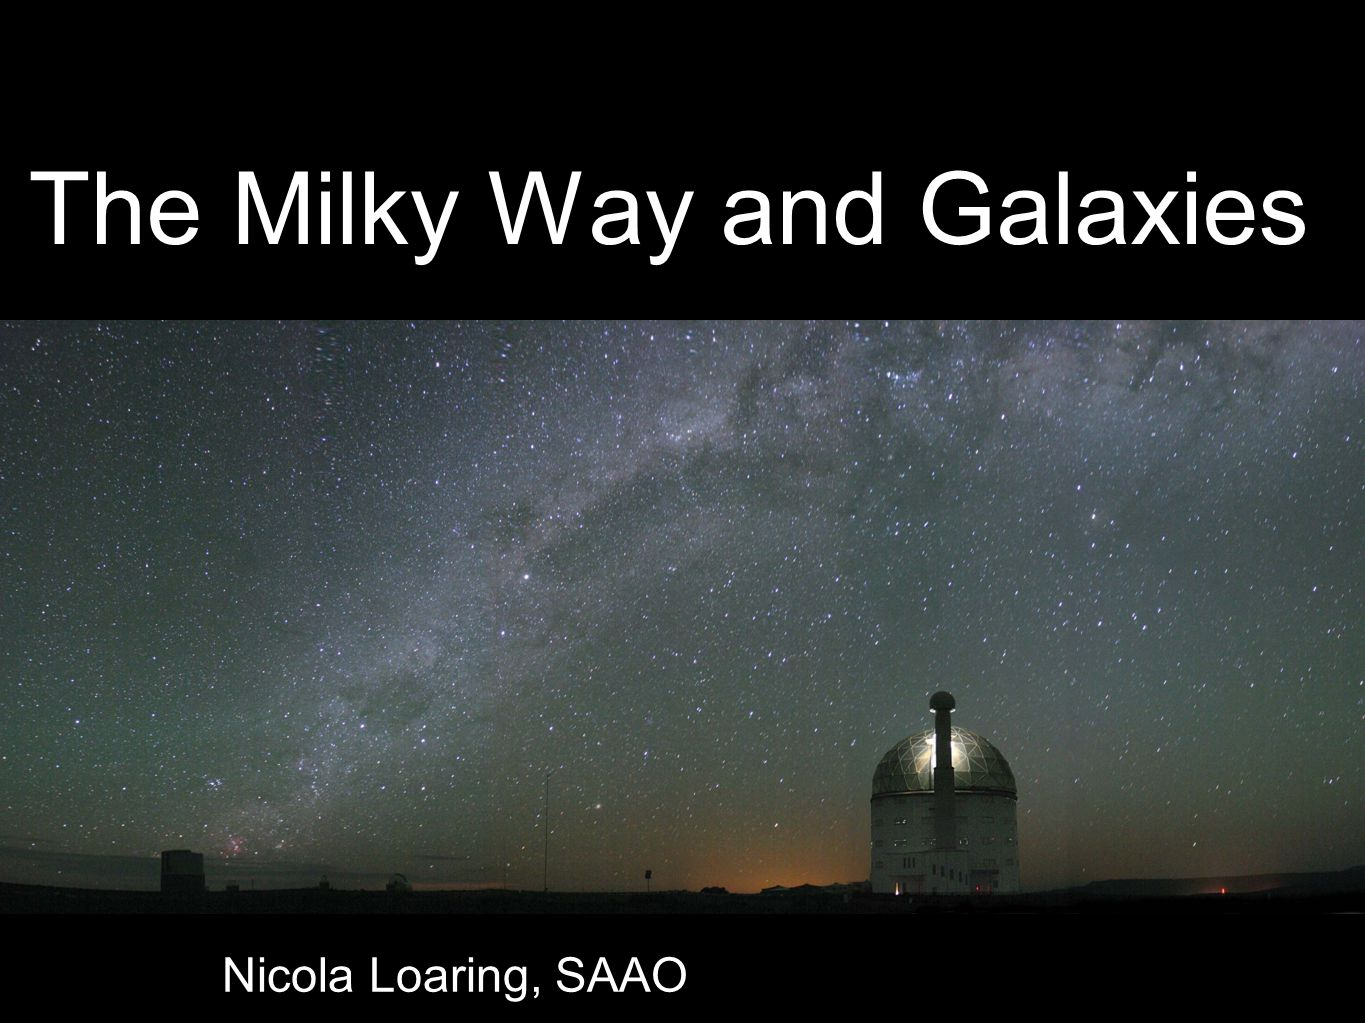 The Milky Way and Galaxies Nicola Loaring, SAAO